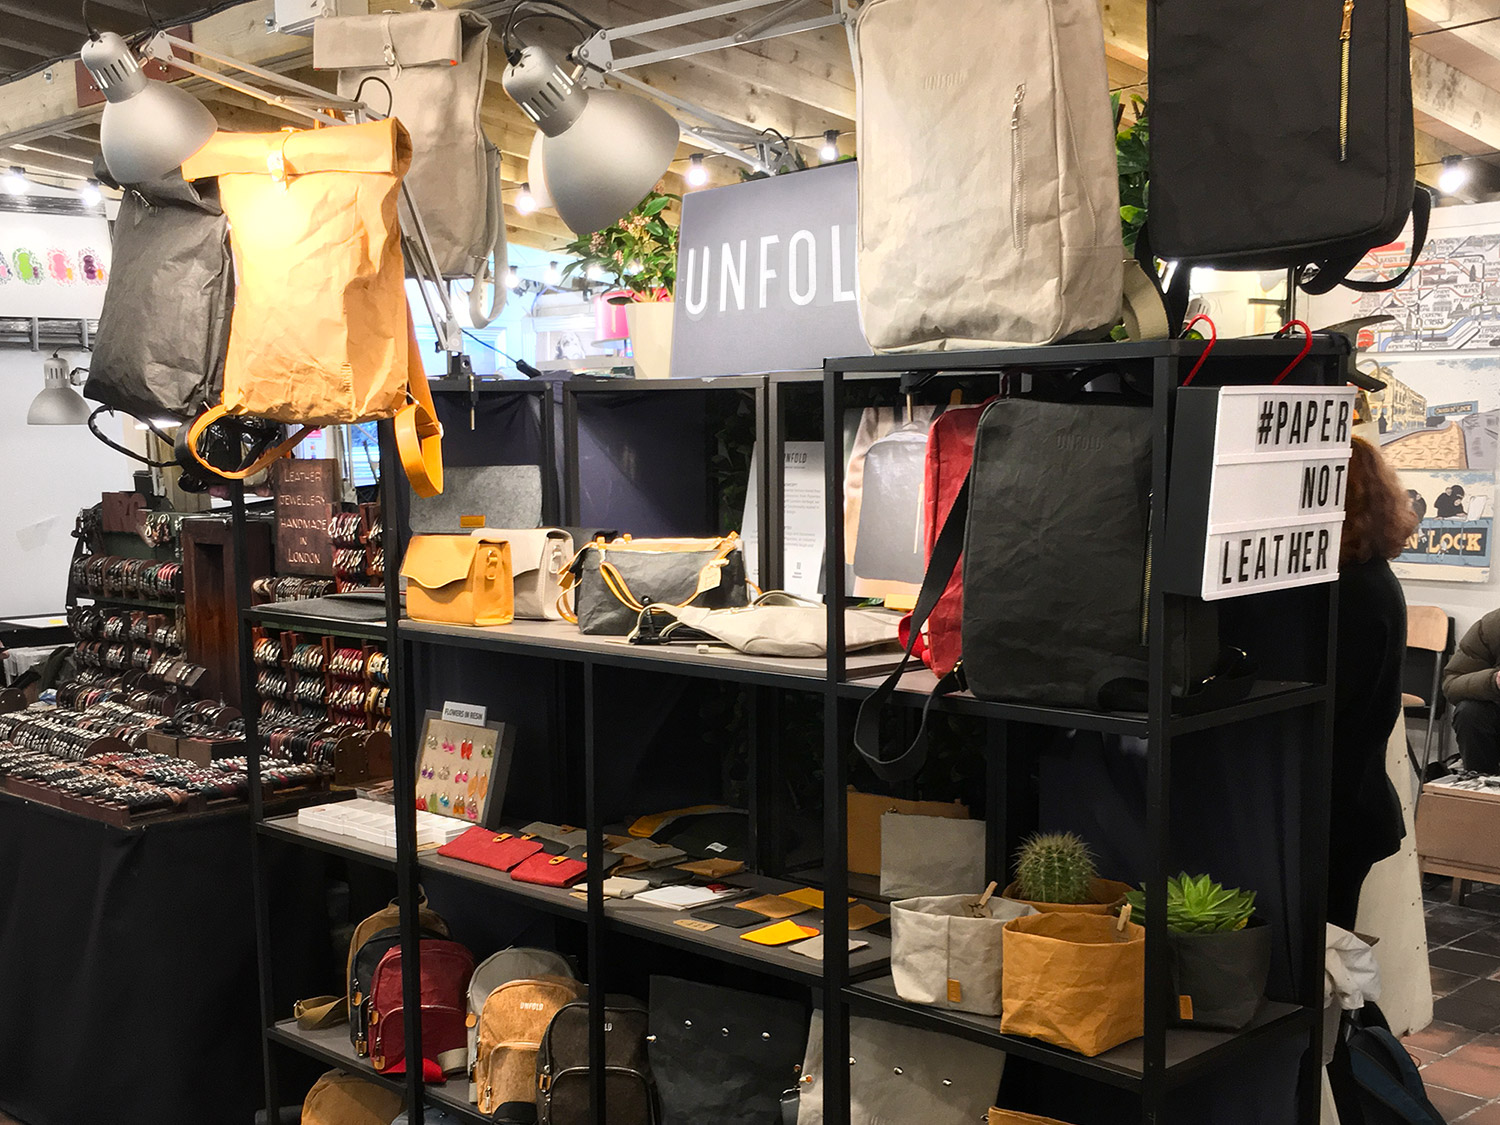 Camden Market Stall - Unfold has a market stall at the world famous Camden Market in North London. You can find us inside the Market Hall, on the 1st floor, where the arts & crafts zone is. We are open 10-6, daily.Come say hi!